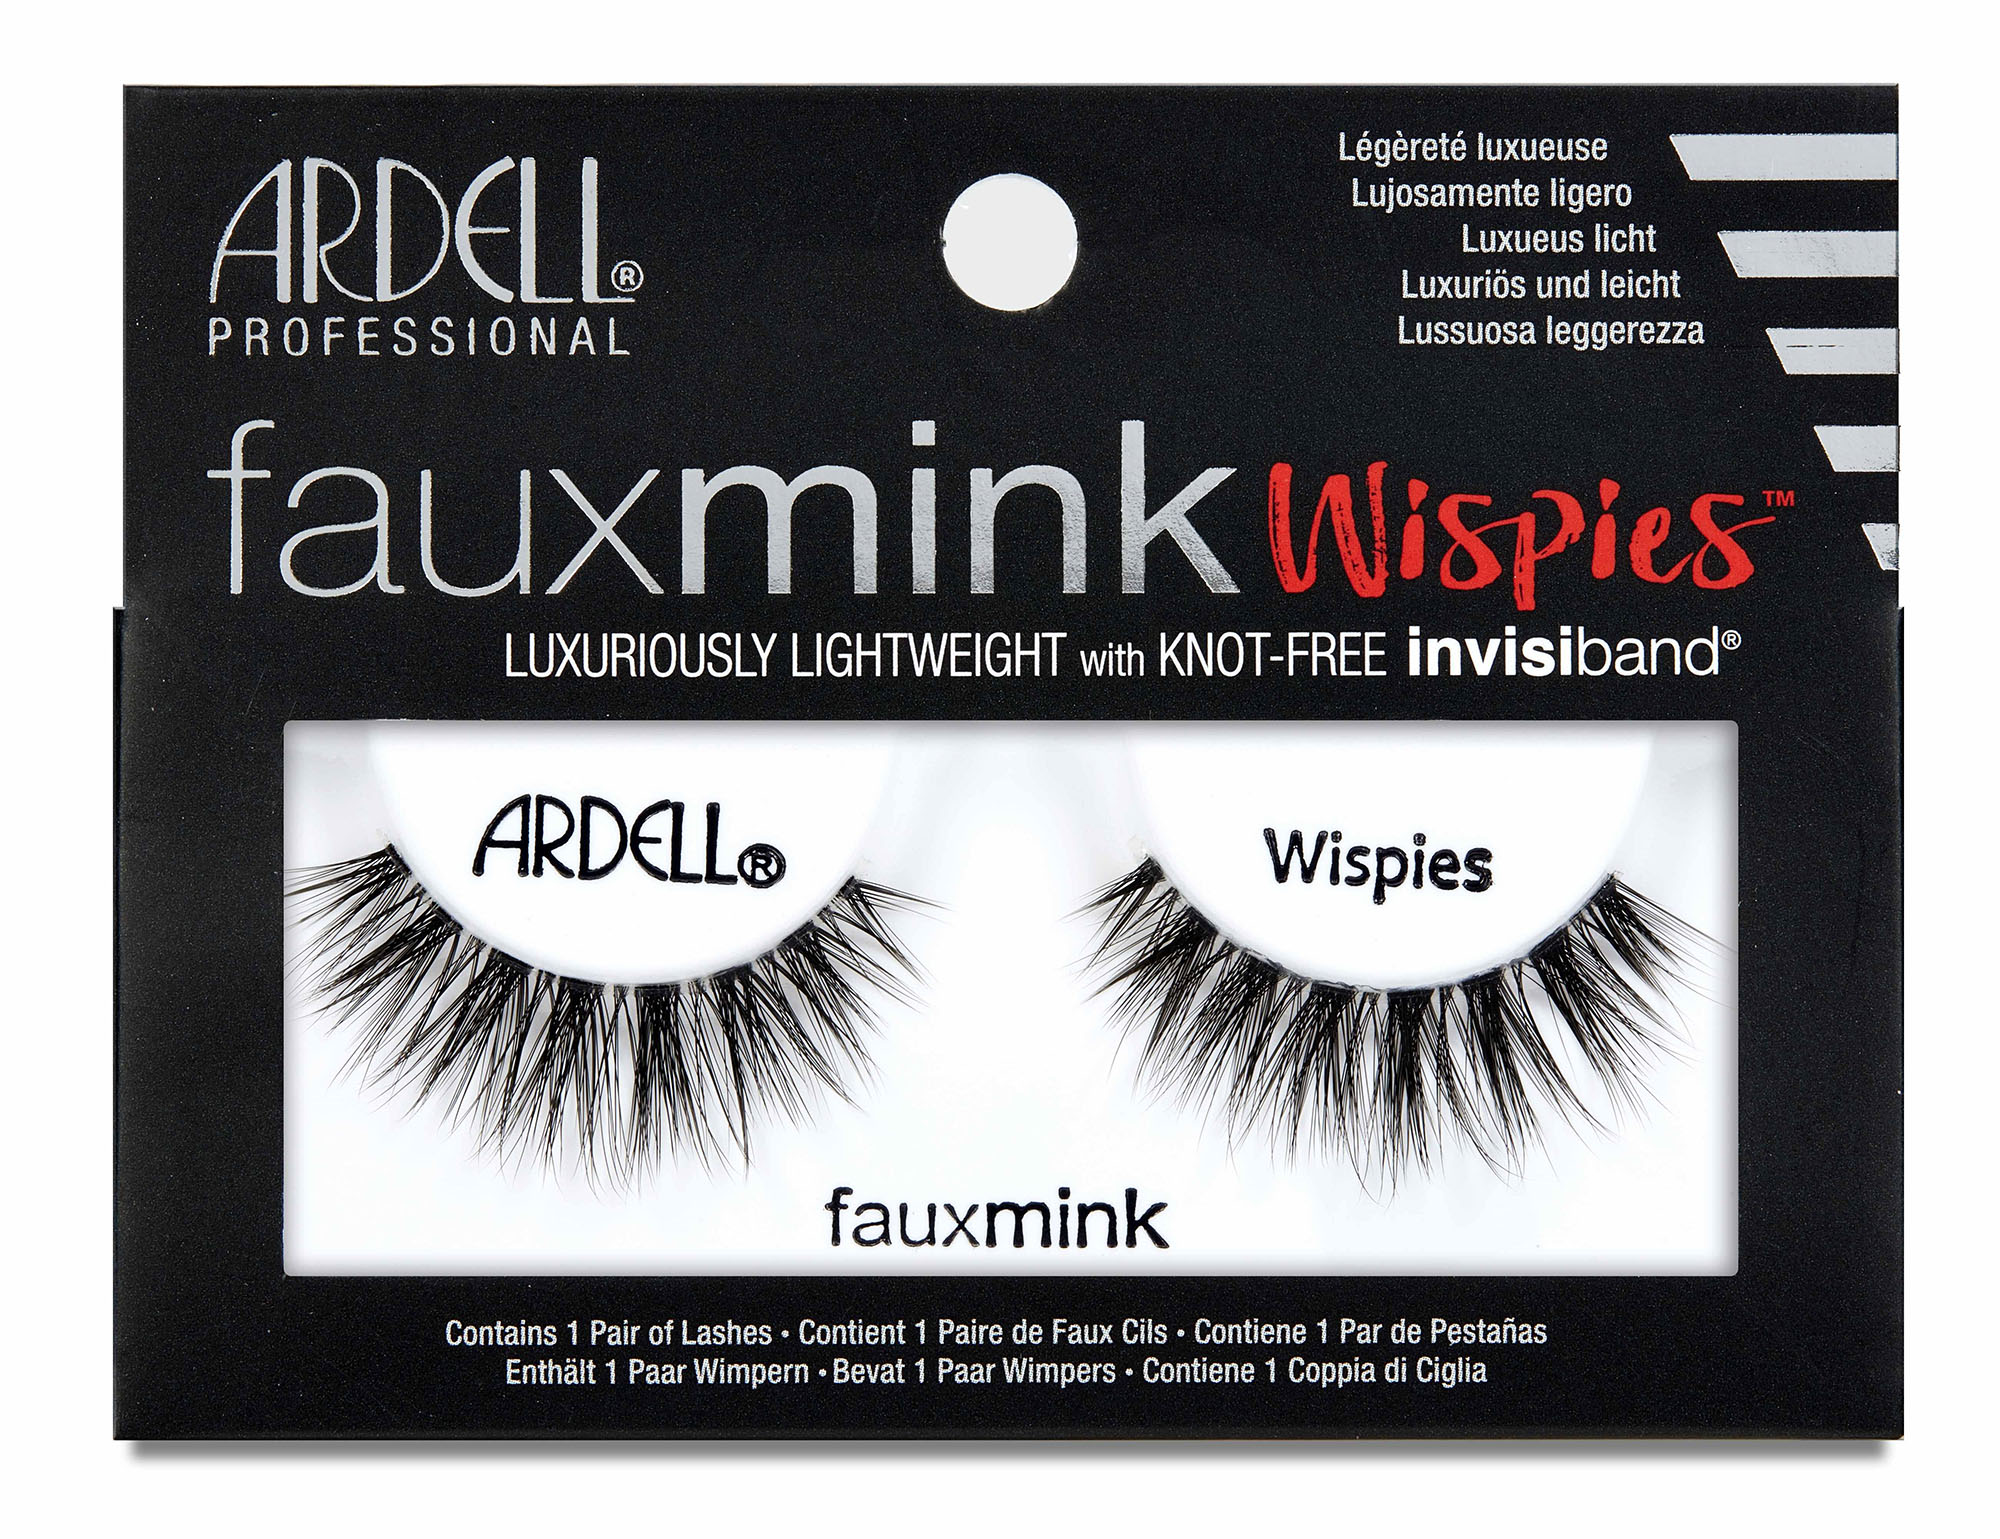 Faux Mink Wispies False Lashes